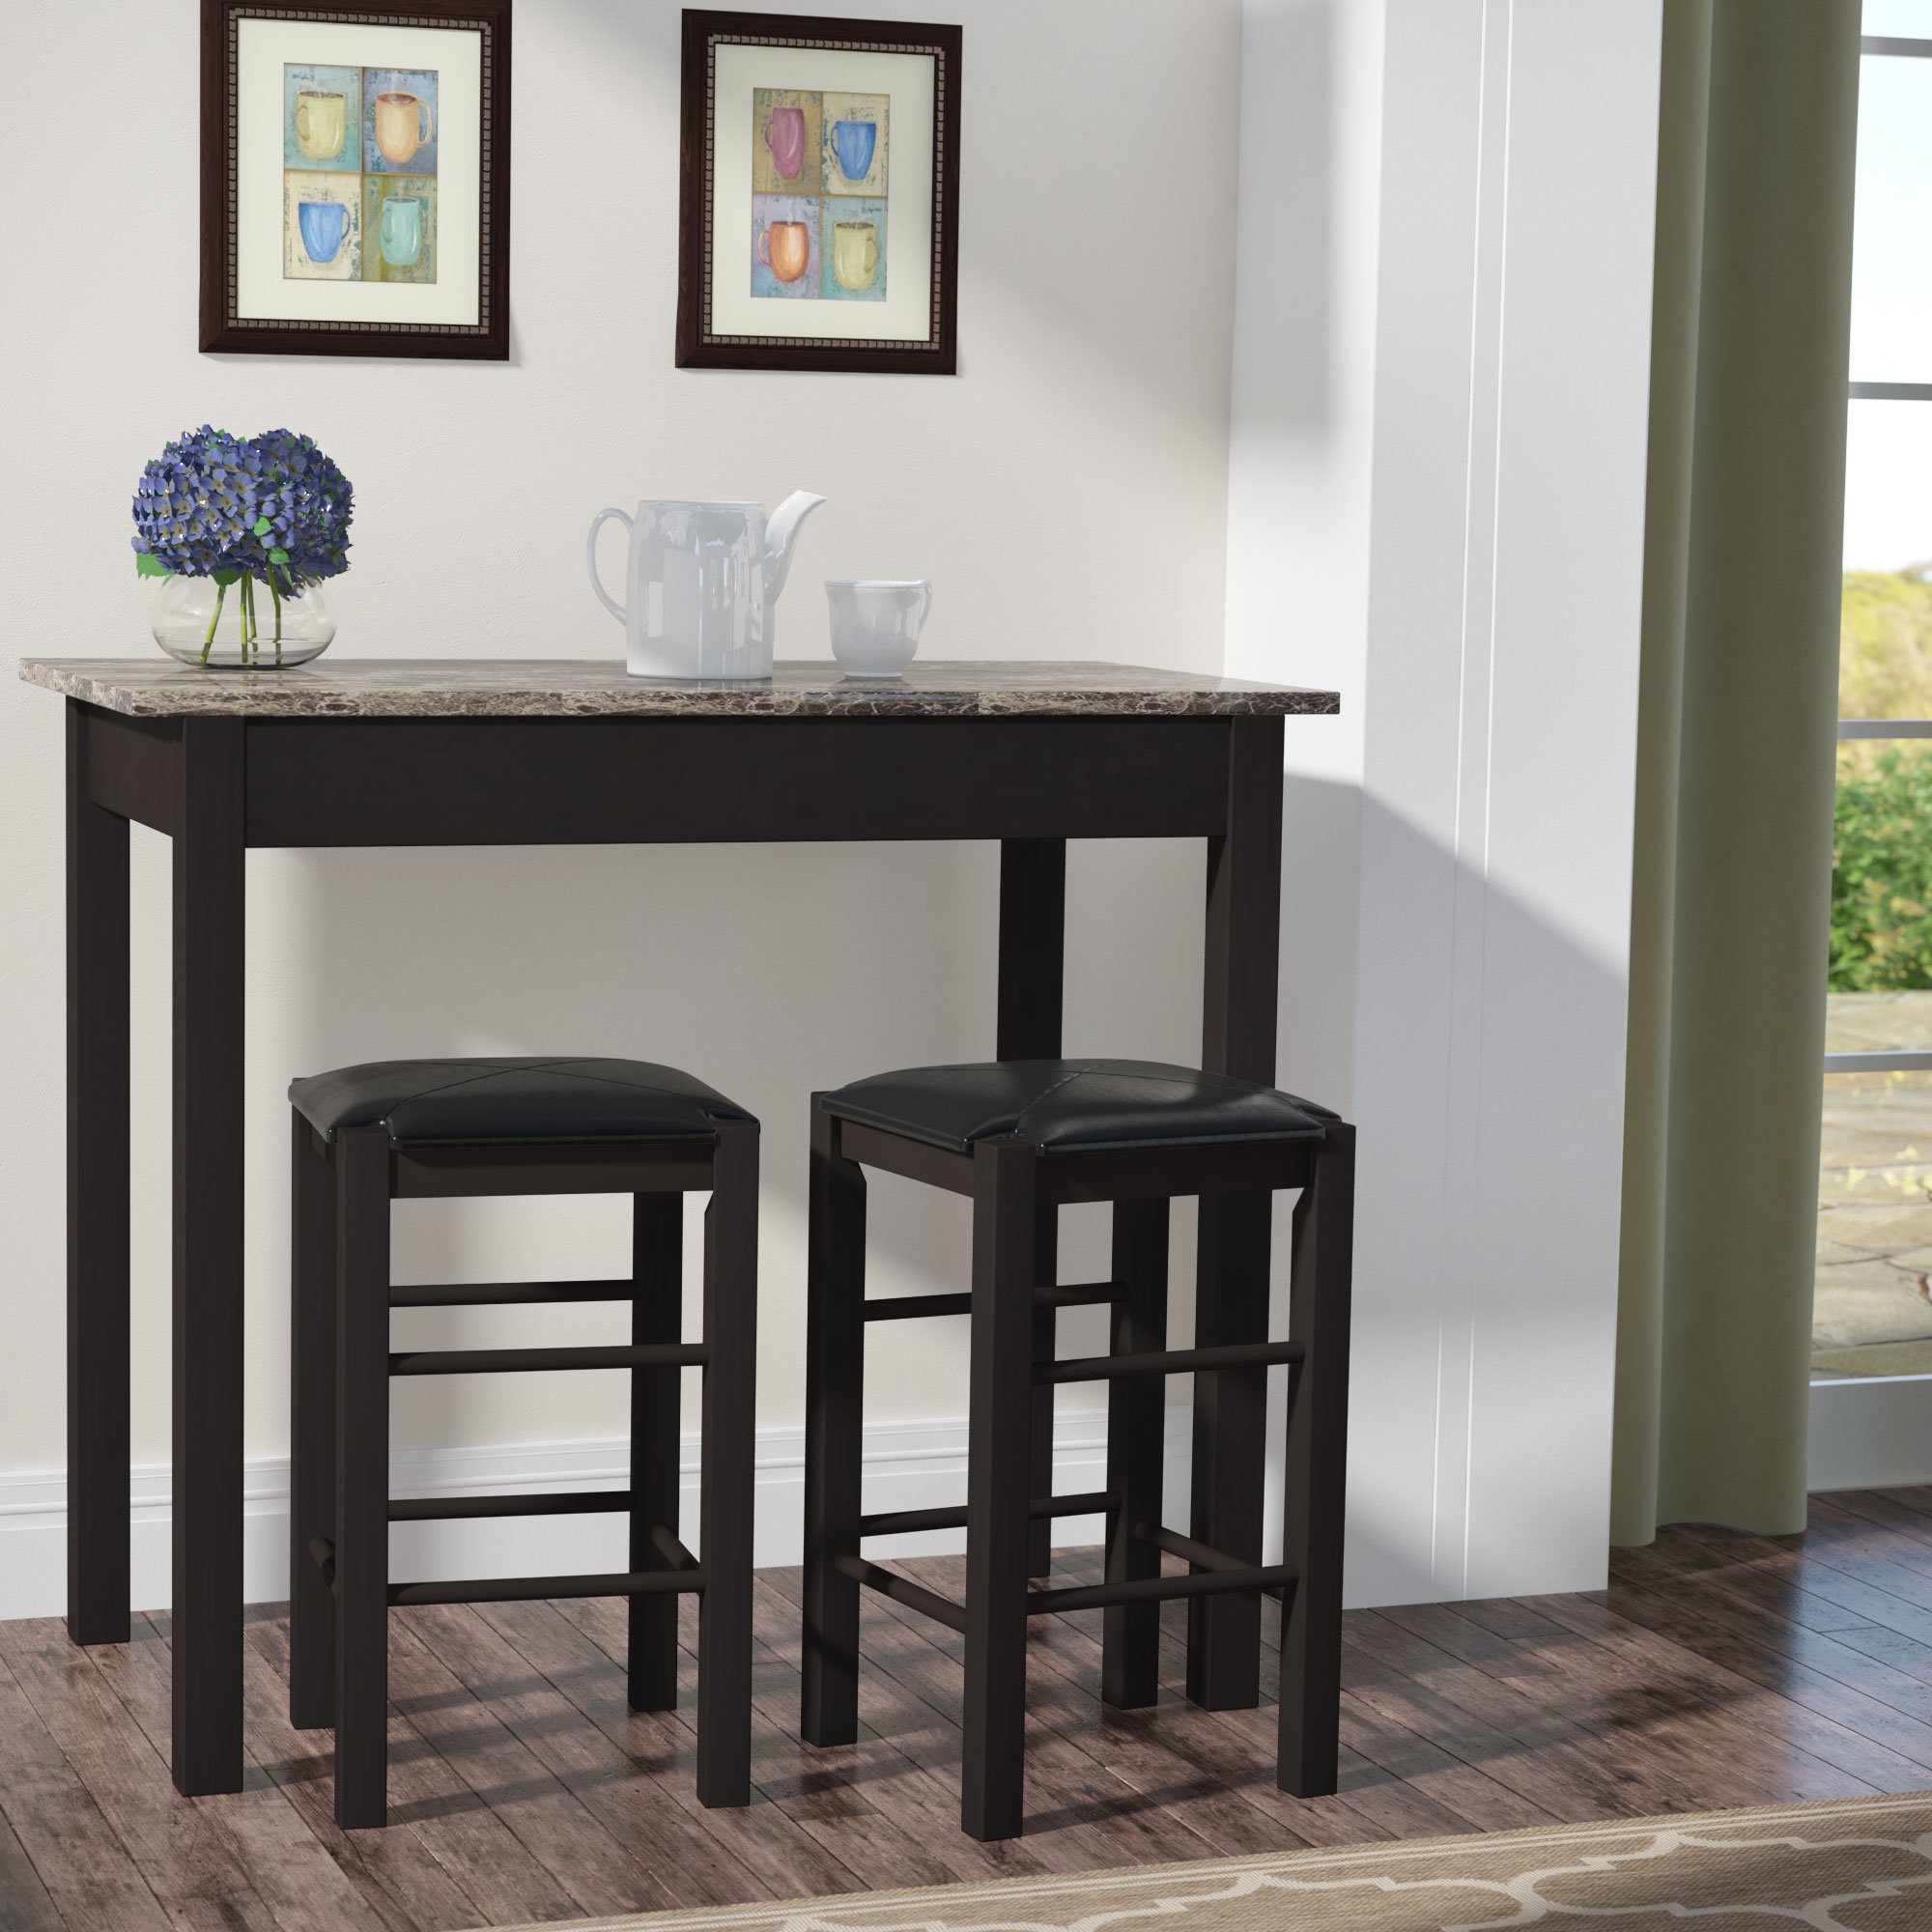 Berrios 3 Piece Counter Height Dining Sets Inside Fashionable Winston Porter Sheetz 3 Piece Counter Height Dining Set & Reviews (#1 of 20)